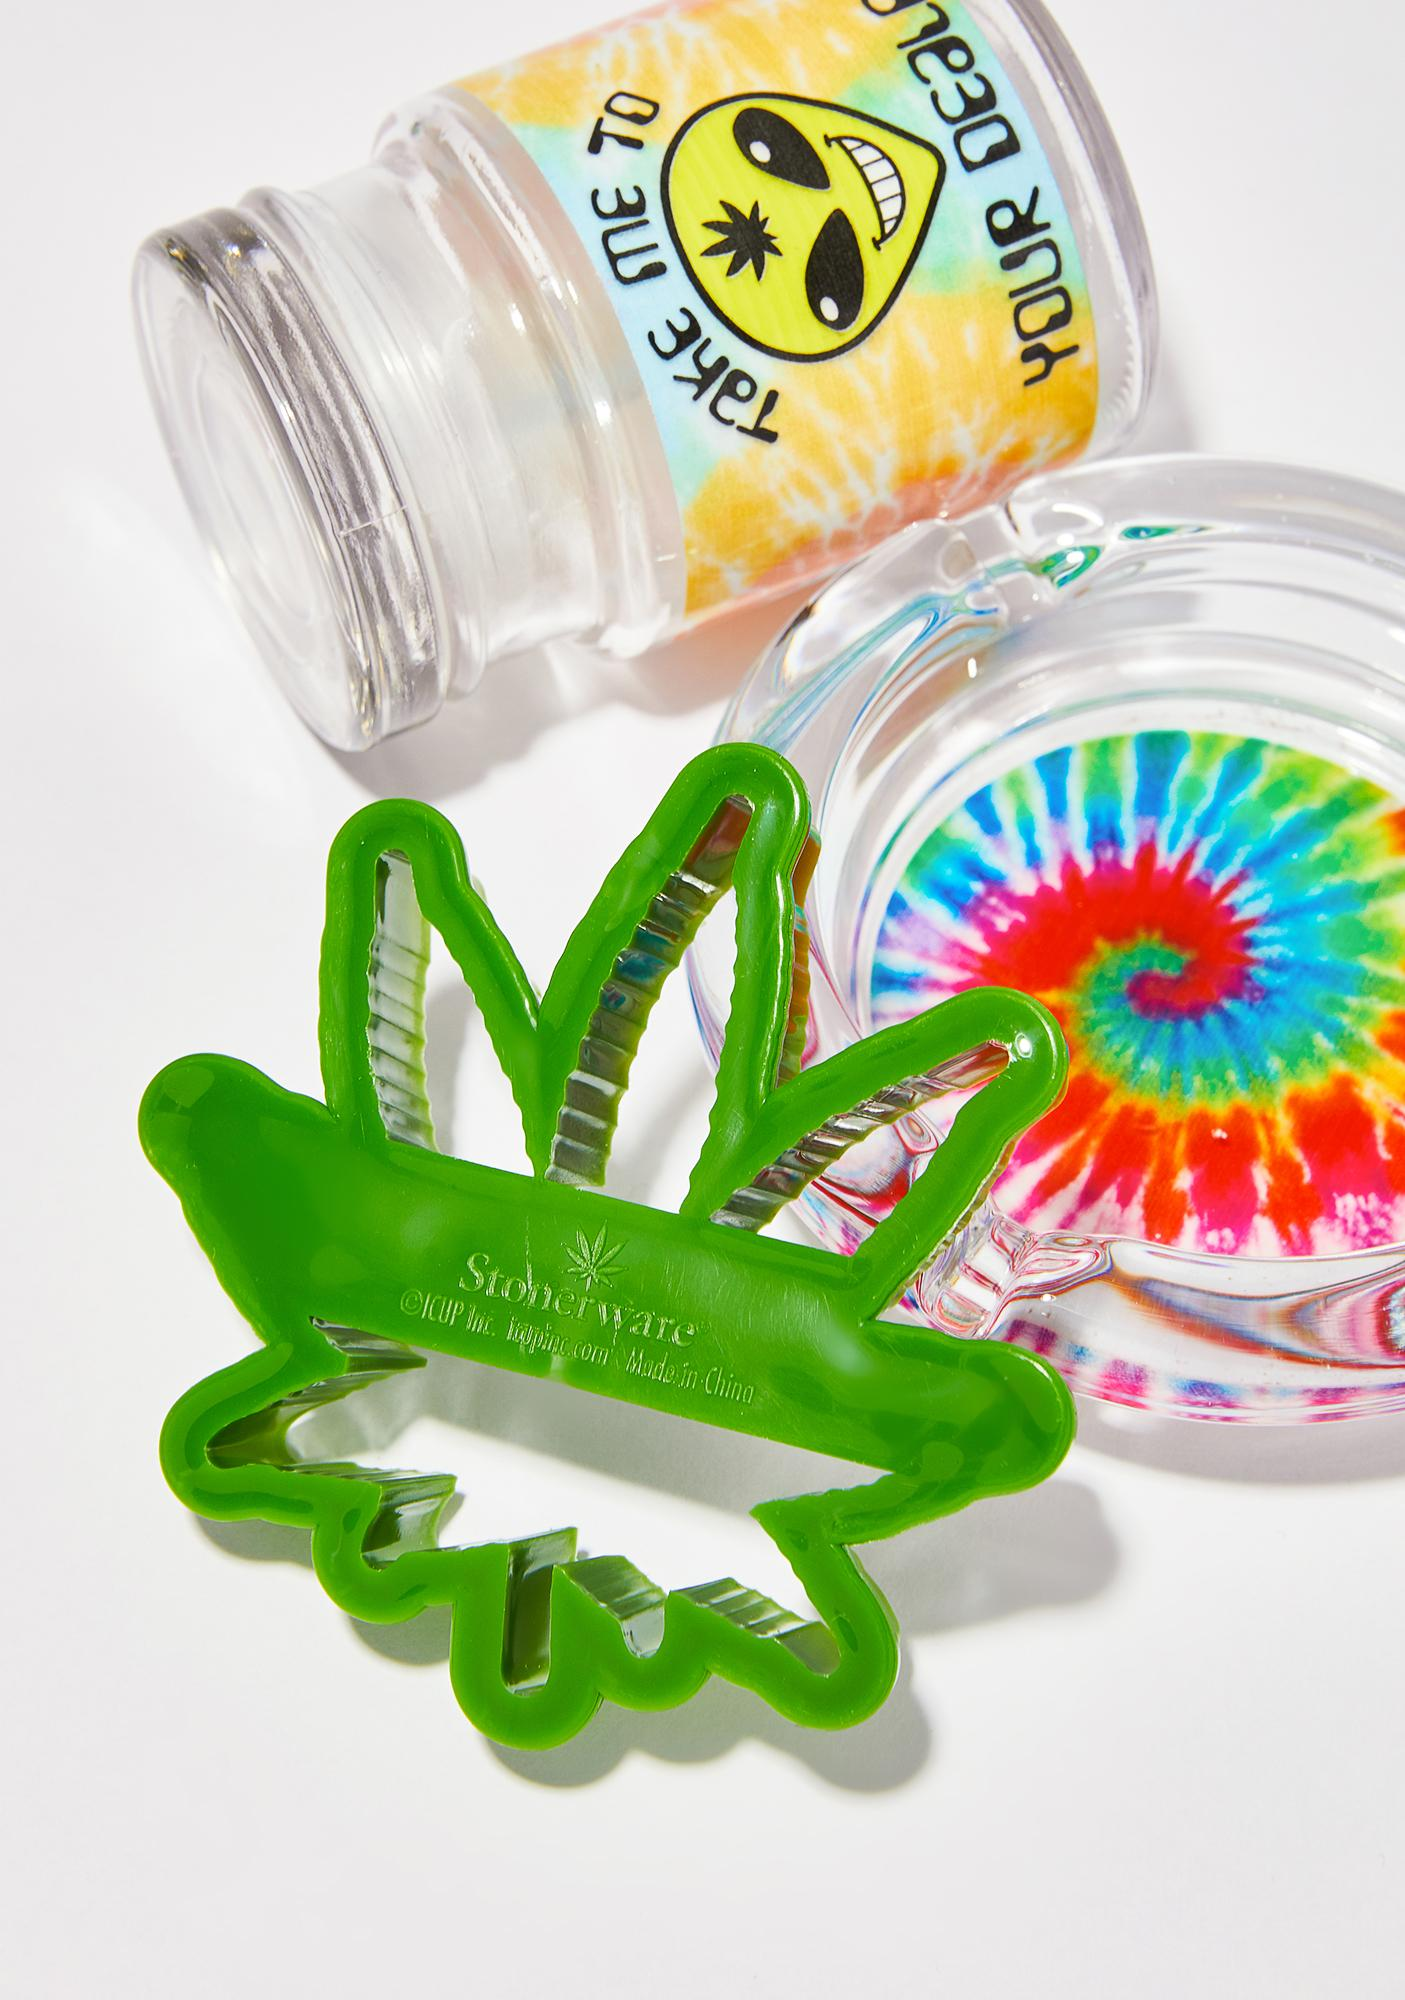 Bake Sale Weed Cookie Cutter